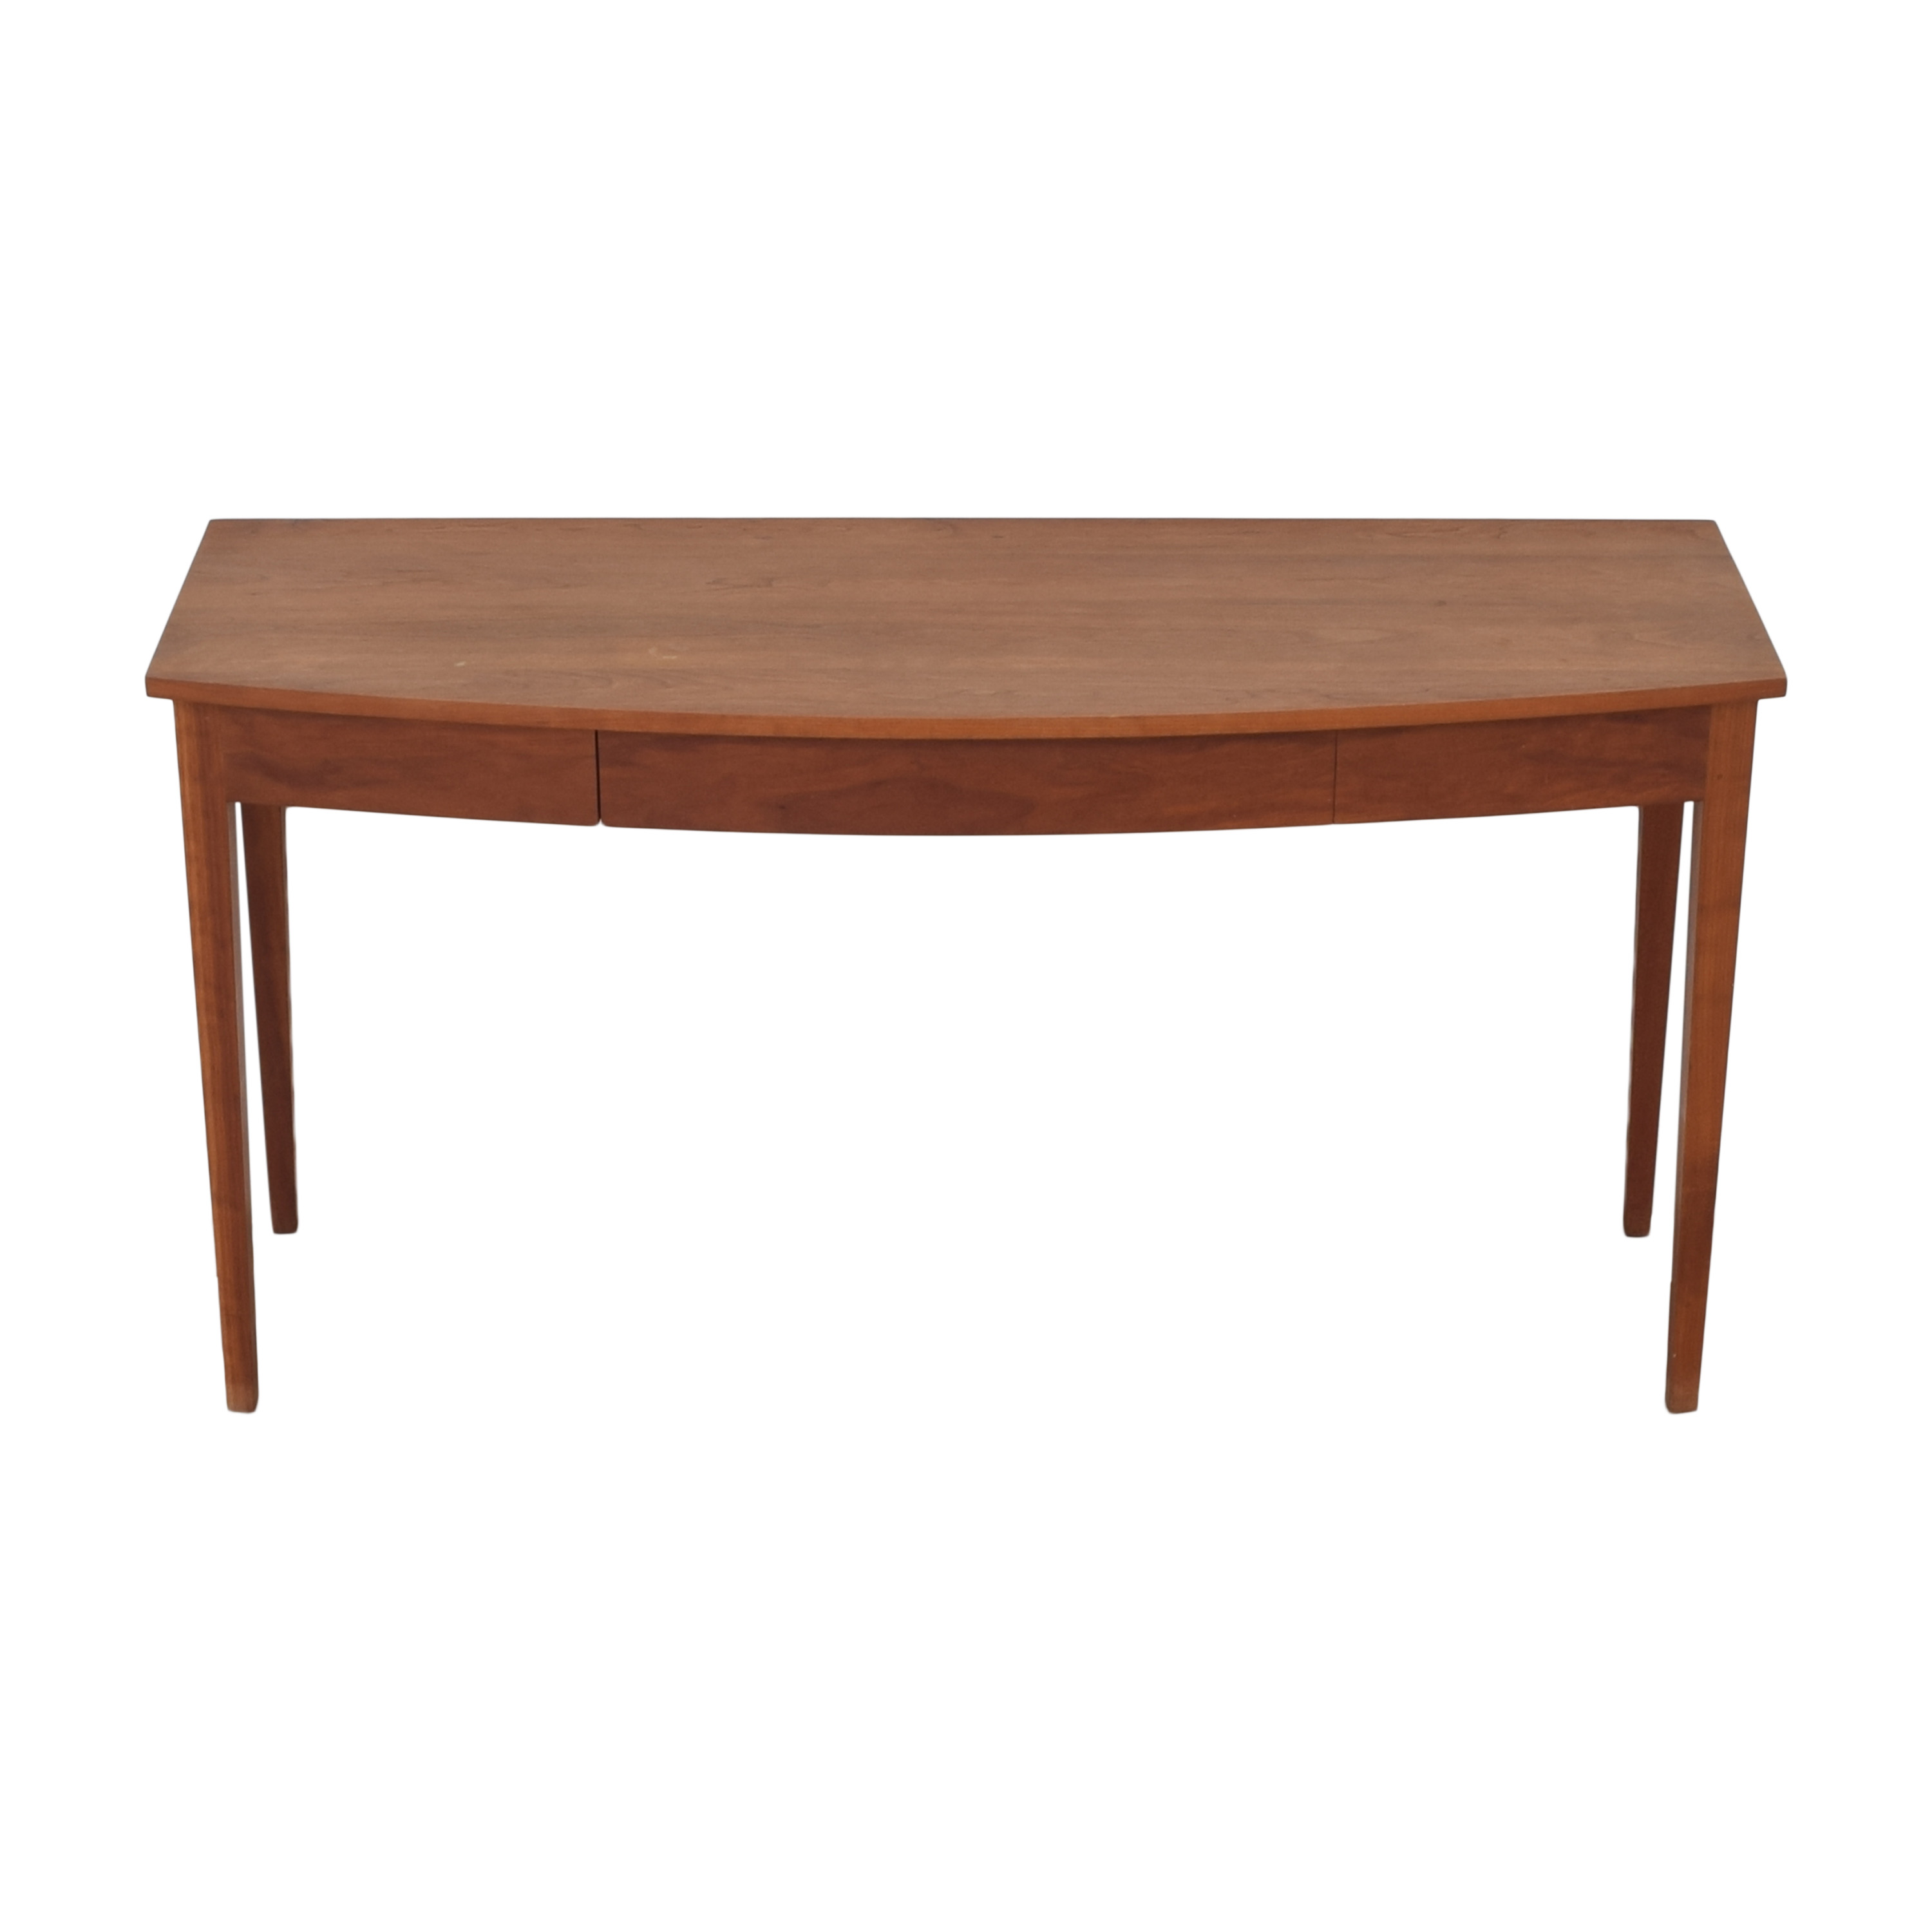 Thos. Moser Thos. Moser Bowfront Glove Table Accent Tables